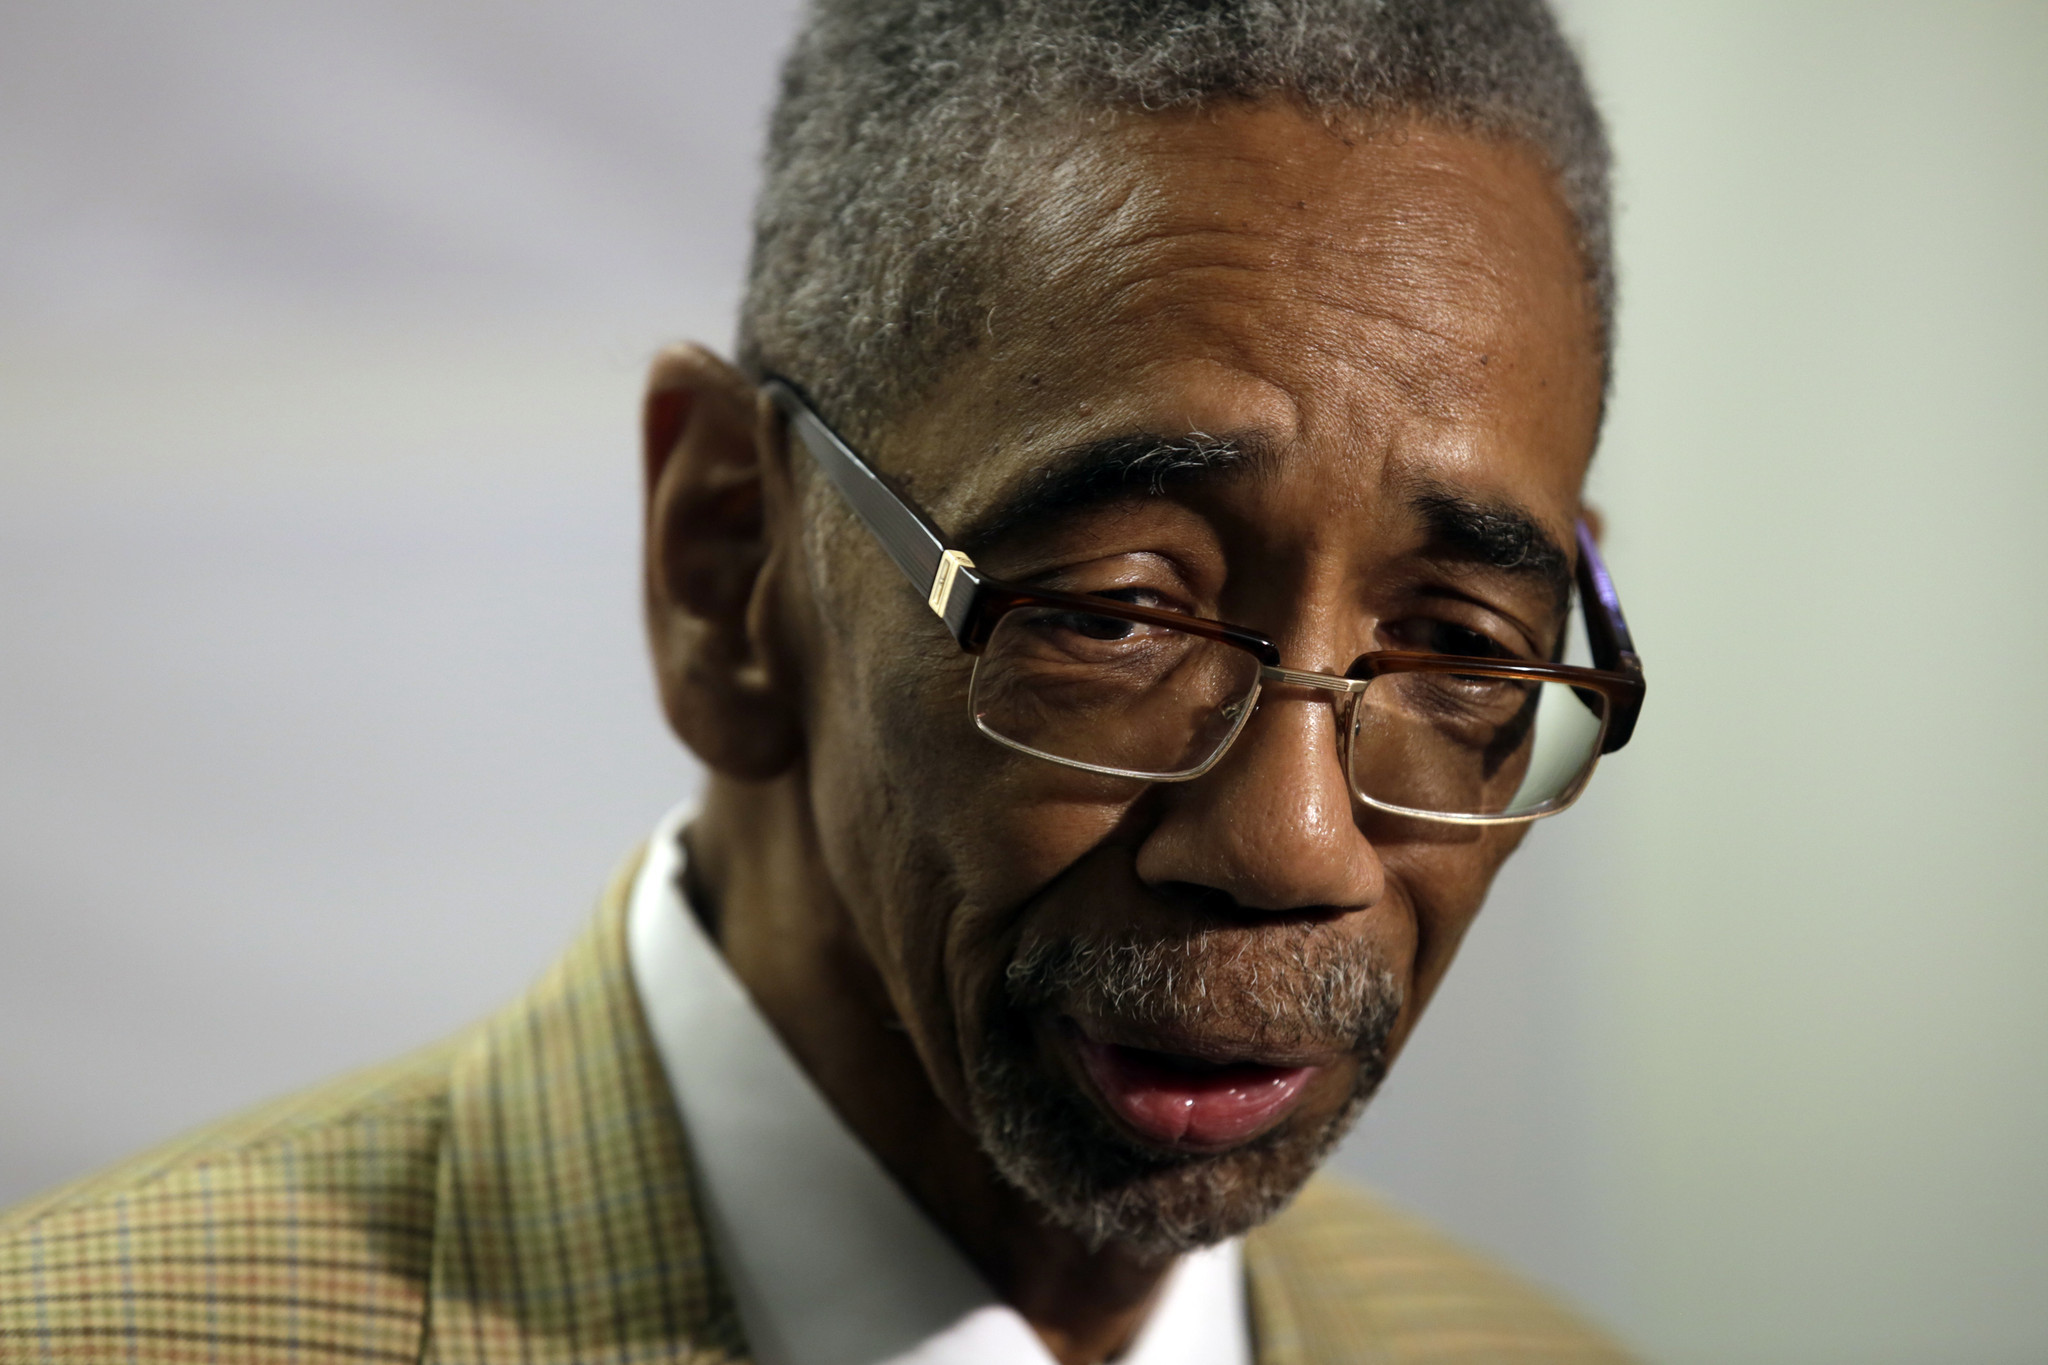 U.S. Rep Bobby Rush at a news conference last year. A House ethics panel announced Friday it is continuing its investigation of the legislator.